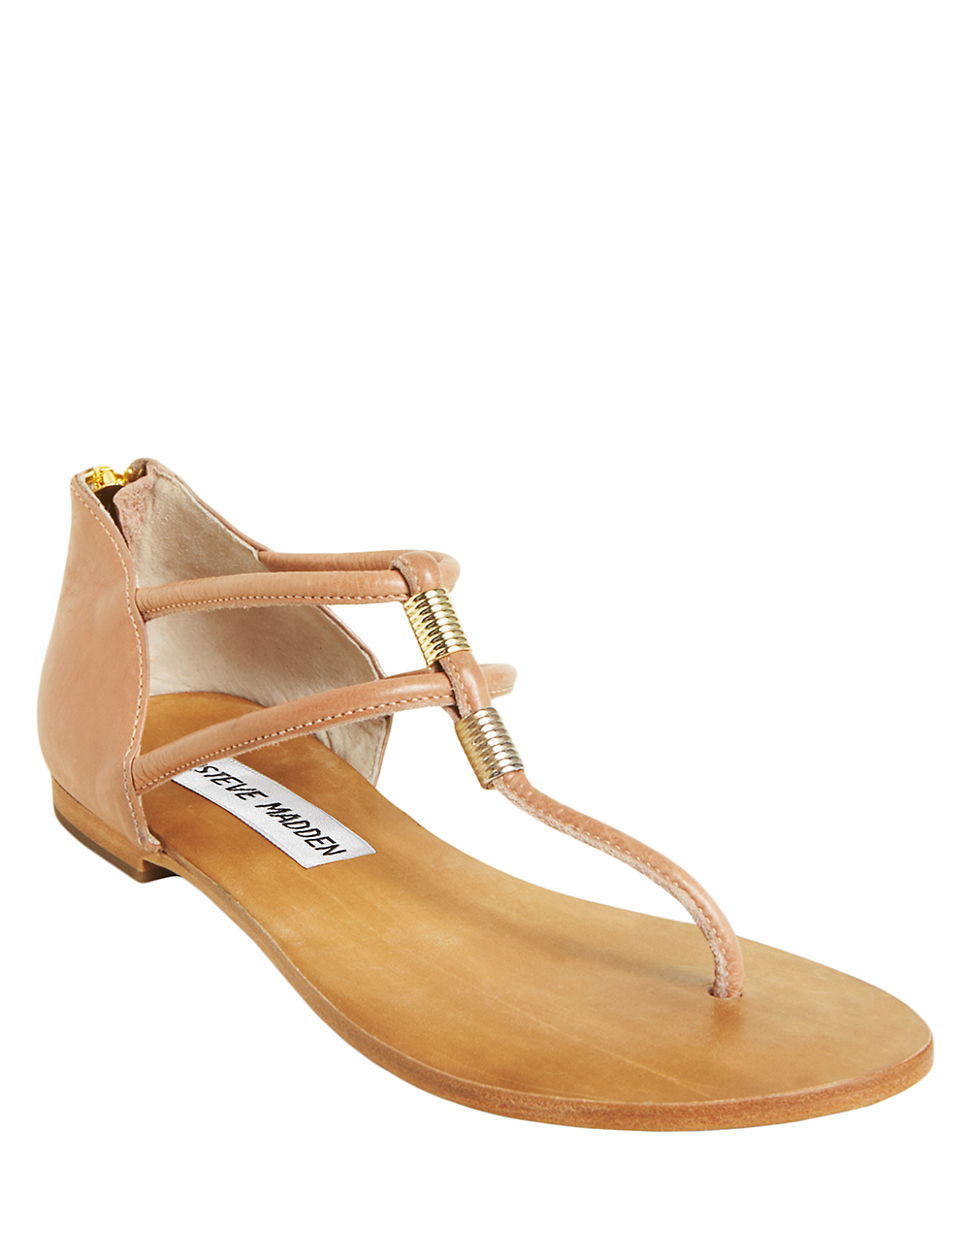 Steve Madden Rantt Faux Leather Thong Sandals In Beige